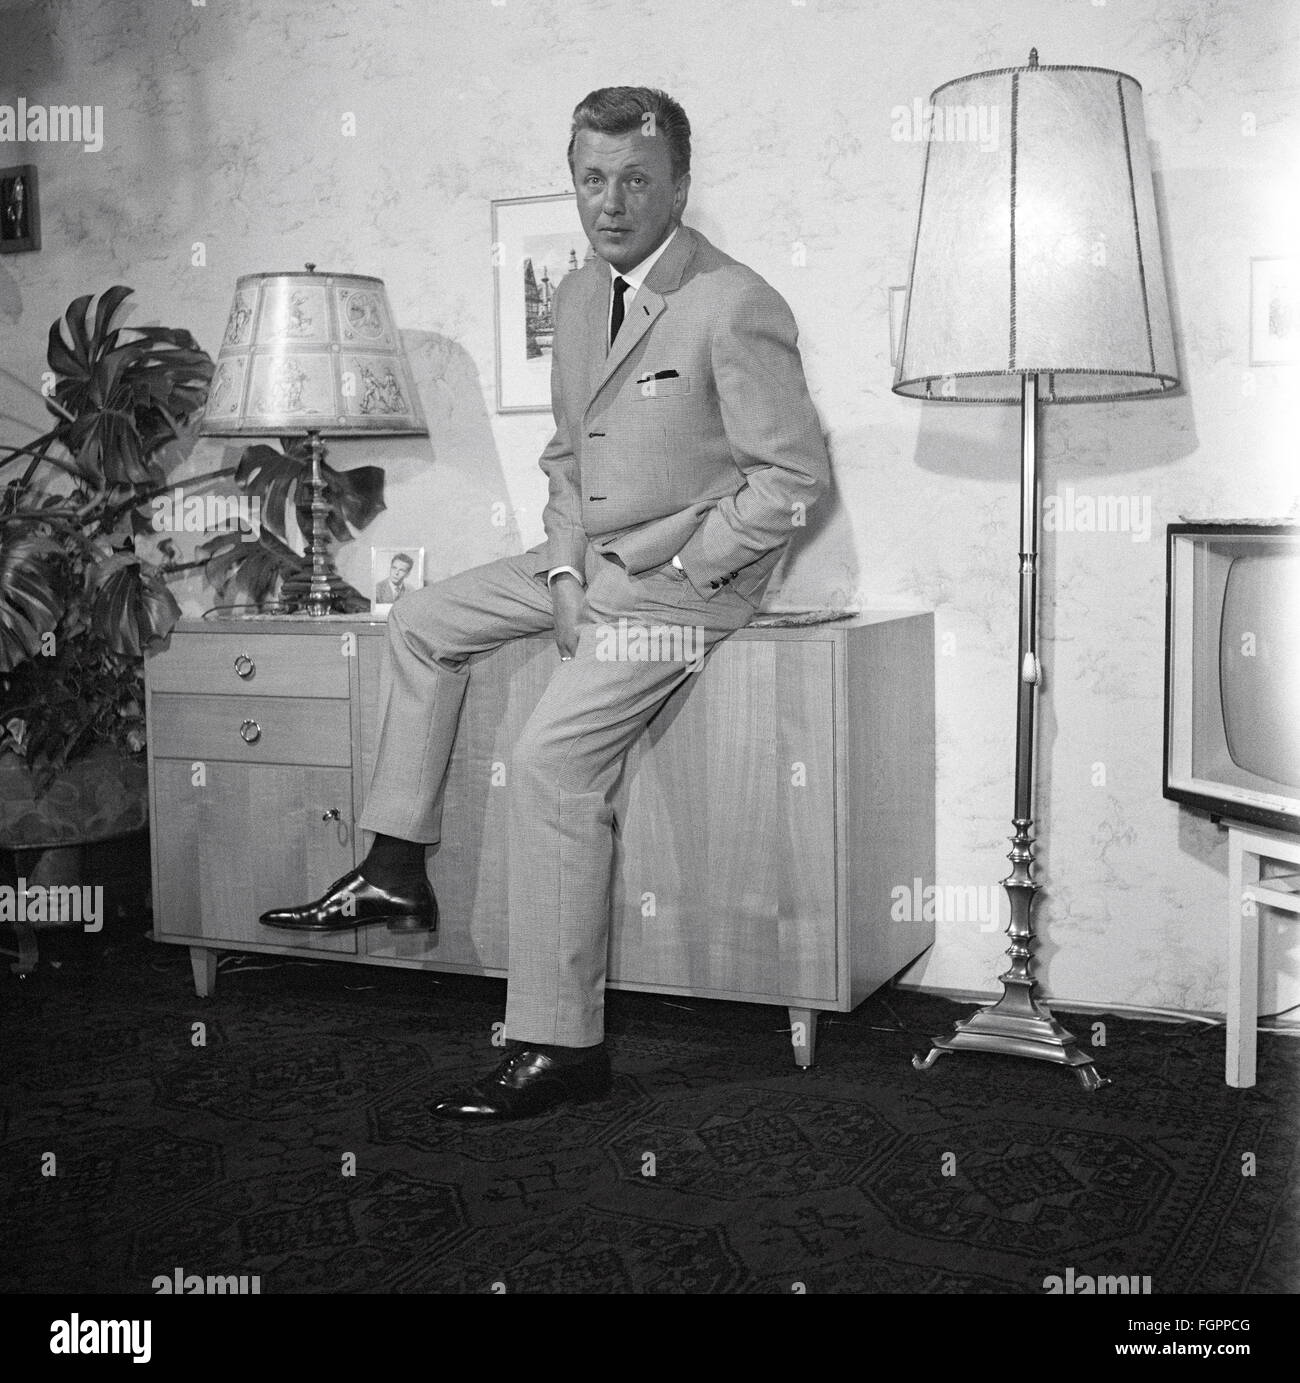 Furnishings Living Room Man Sitting On Commode 1950s Stock Photo